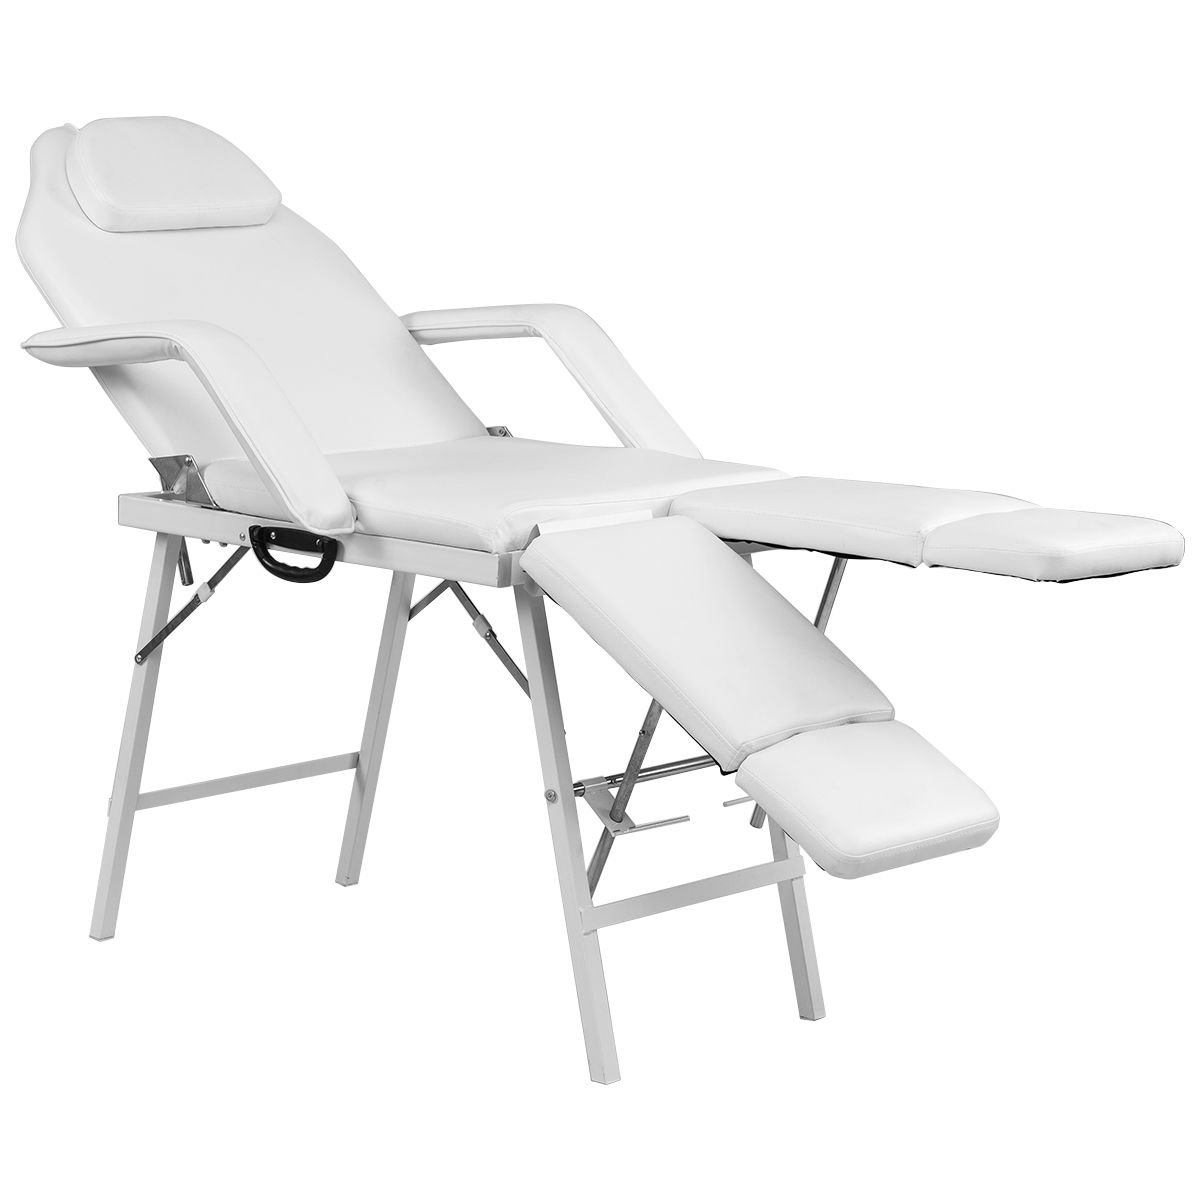 75'' Portable Tattoo Parlor Spa Salon Facial Bed Beauty Massage Table Chair